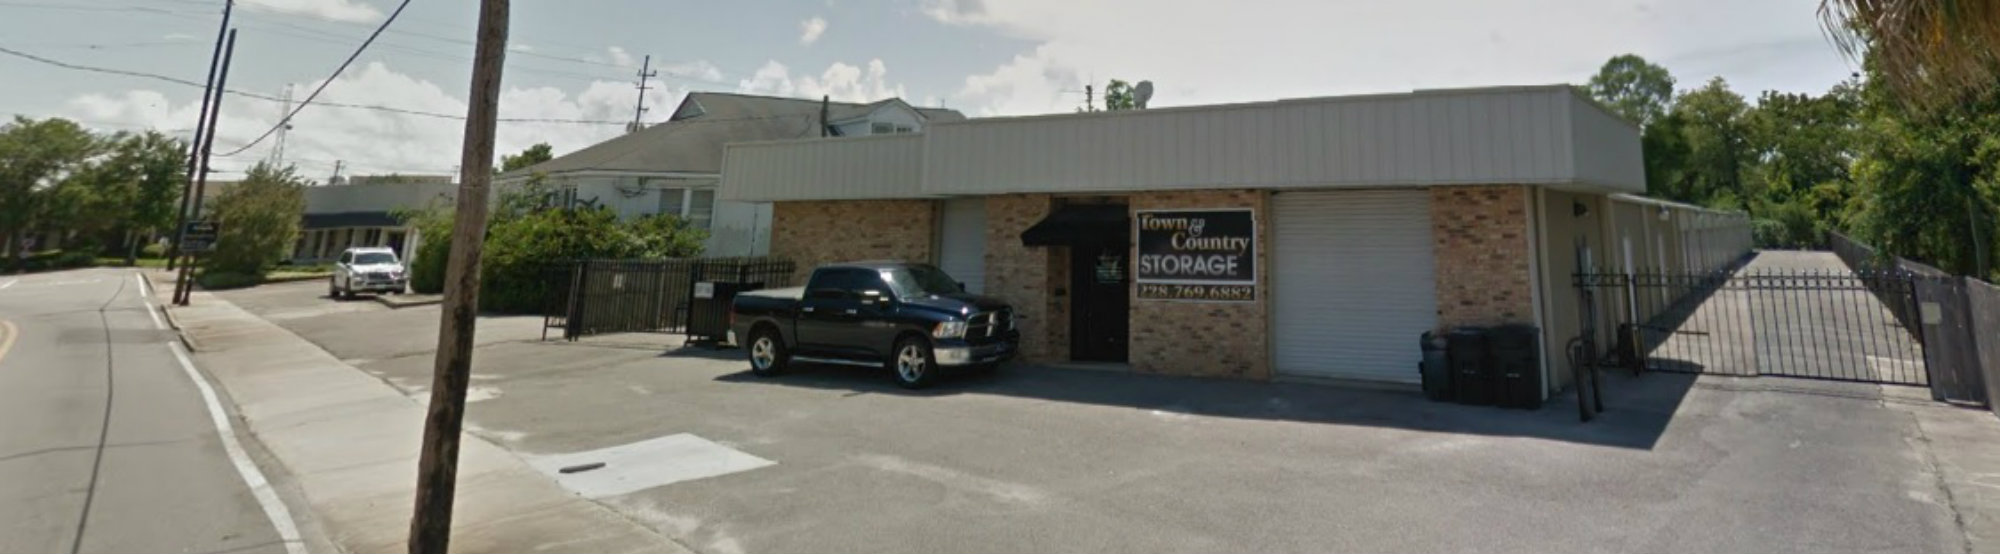 Storage in Pascagoula, MS